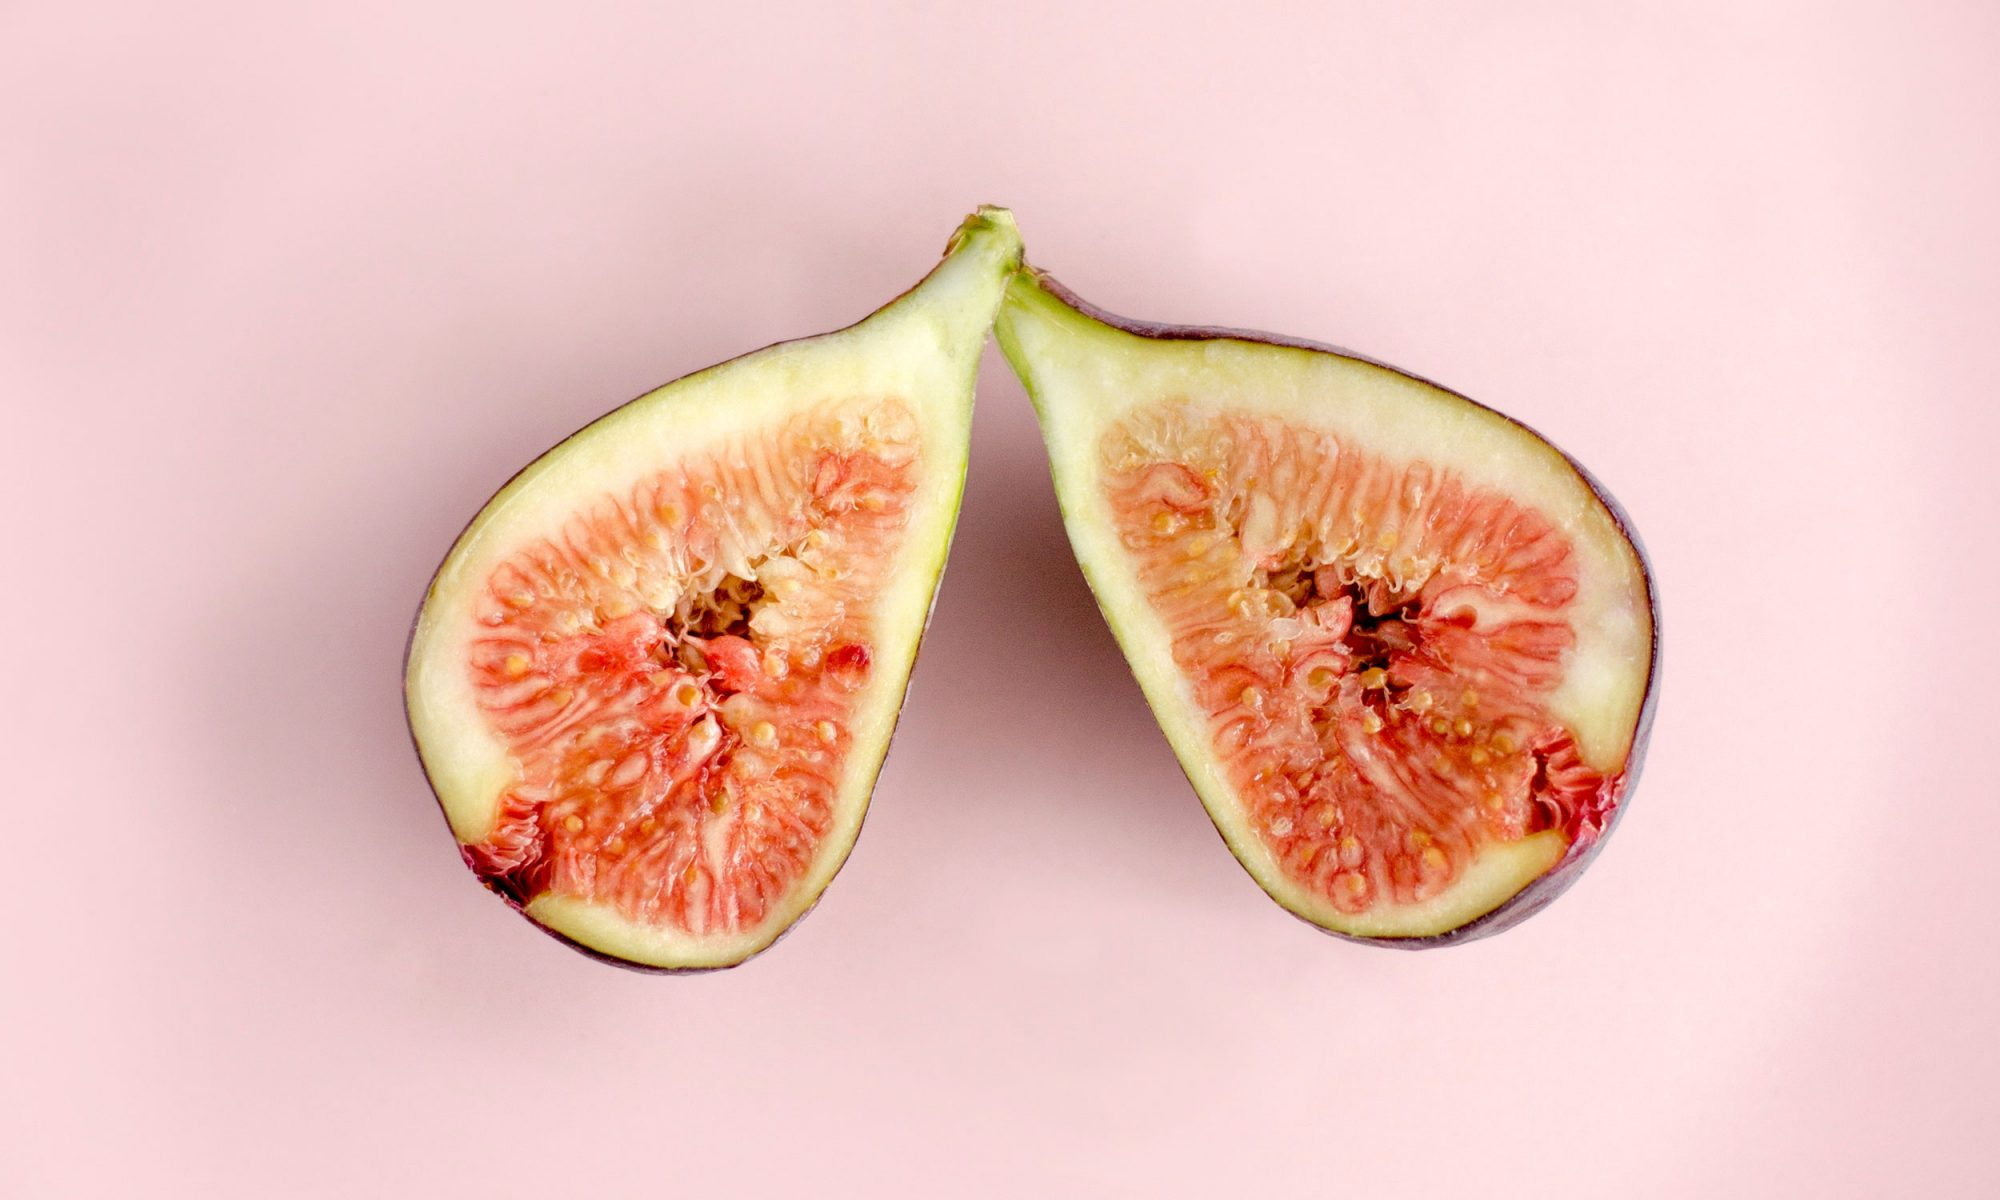 EC: How to Store Fresh Figs So They Don't Get Moldy Immediately